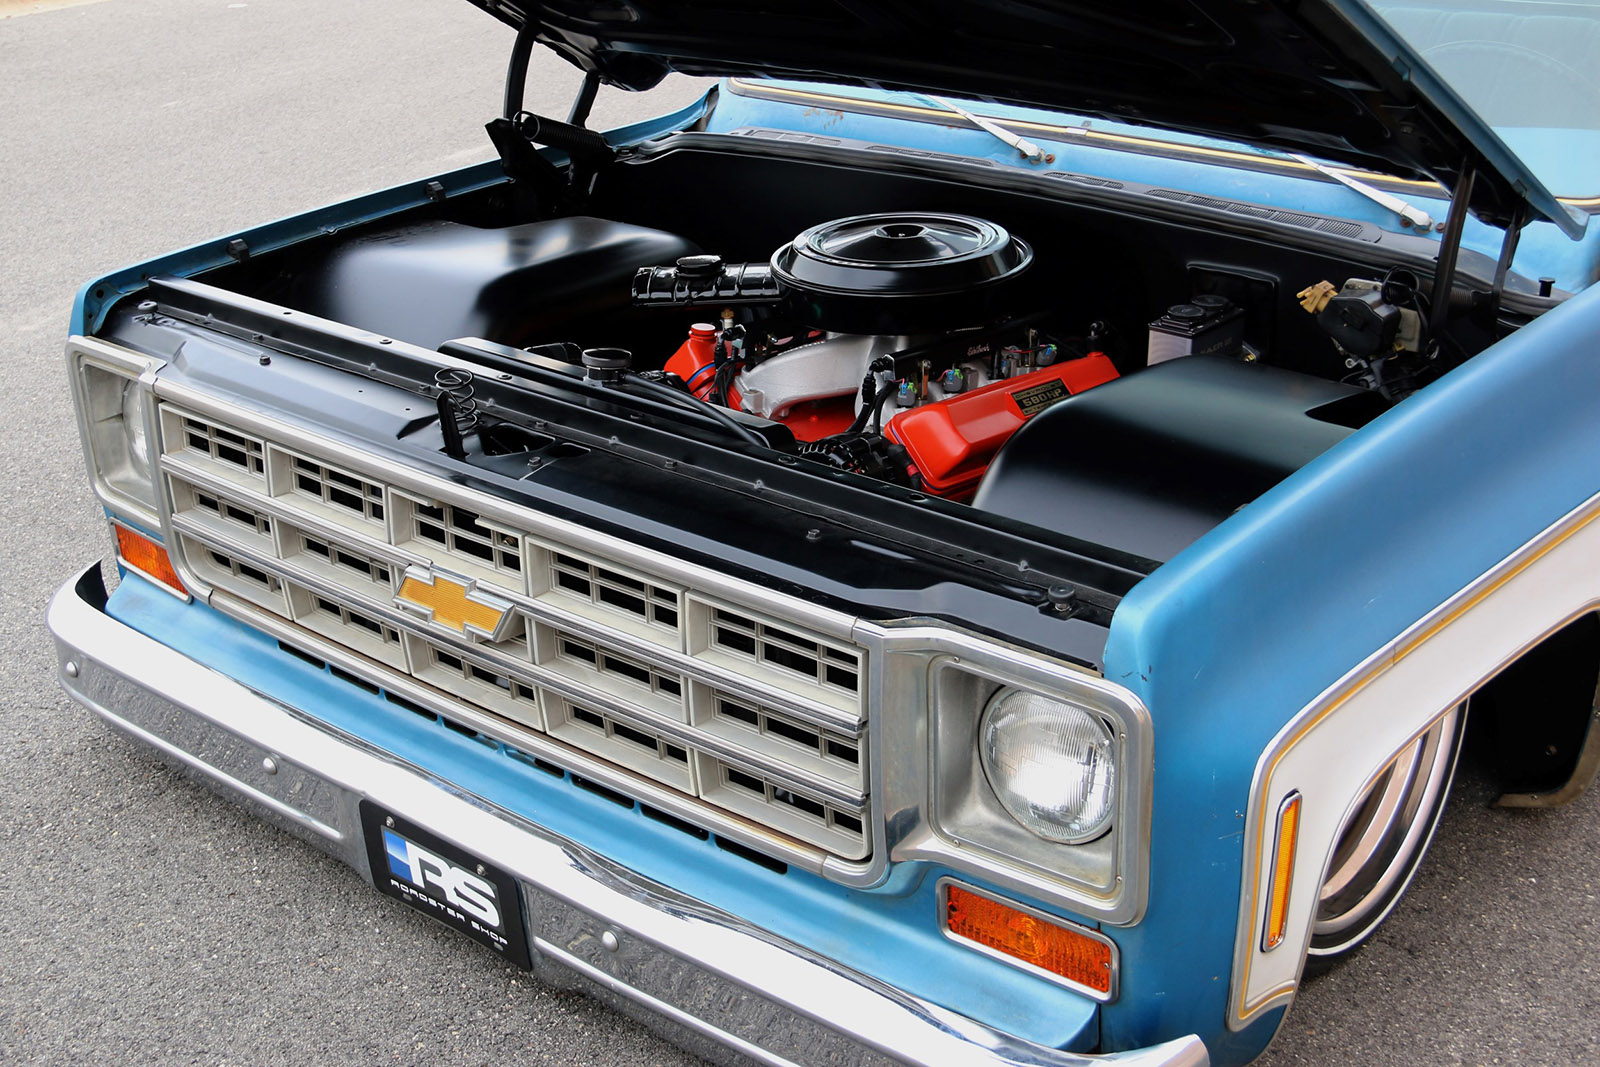 Chevy C10 with a 408 ci LSx – Engine Swap Depot